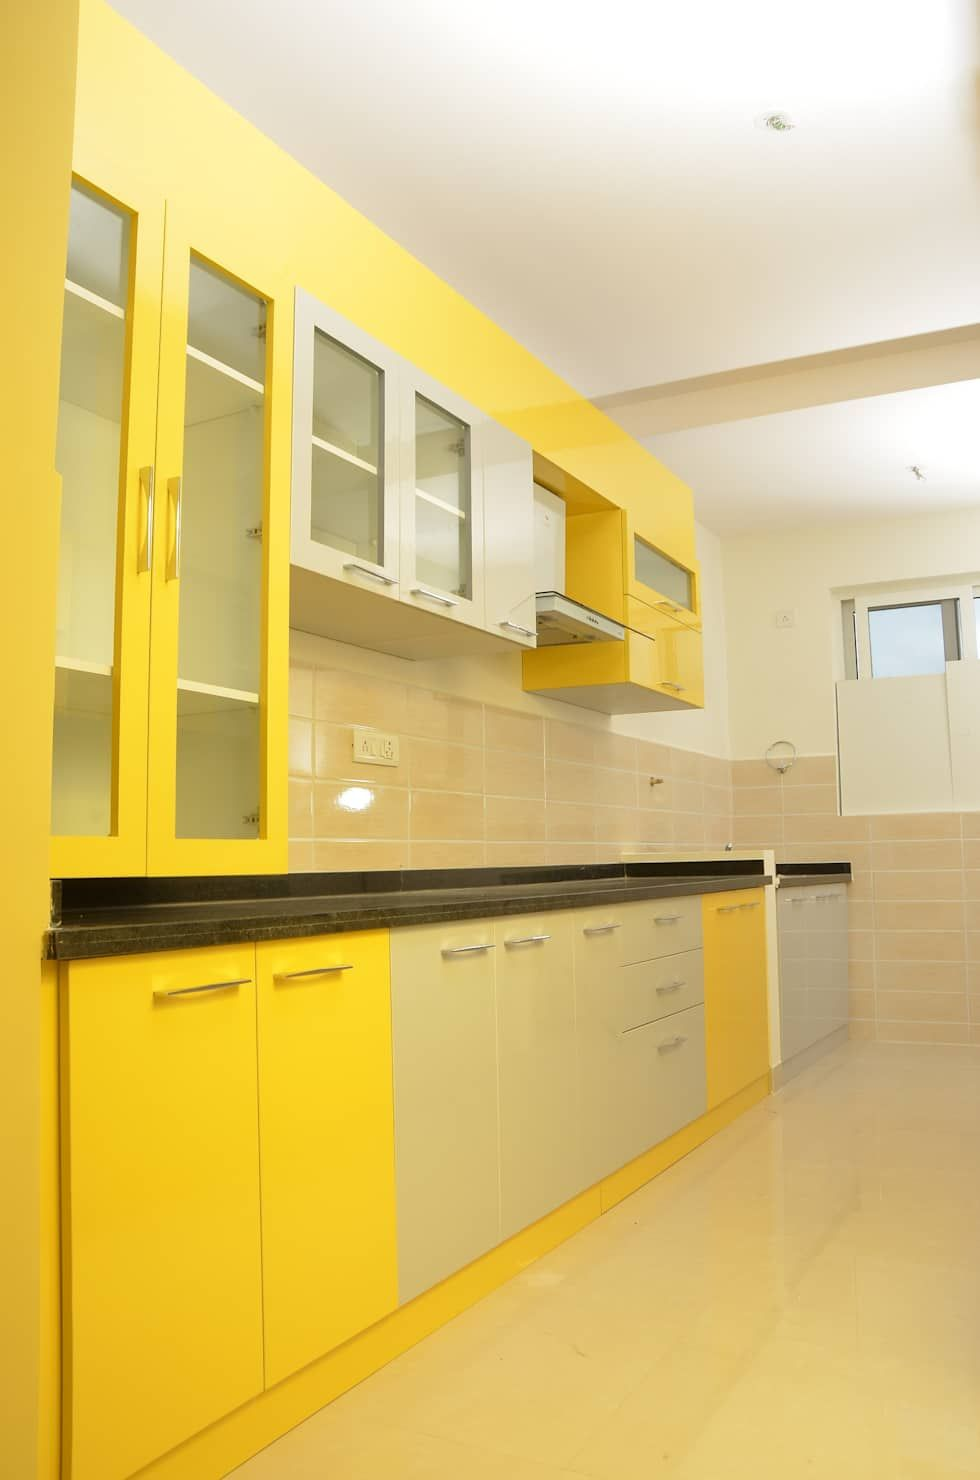 Parallel modular kitchen designs in india asian style ...